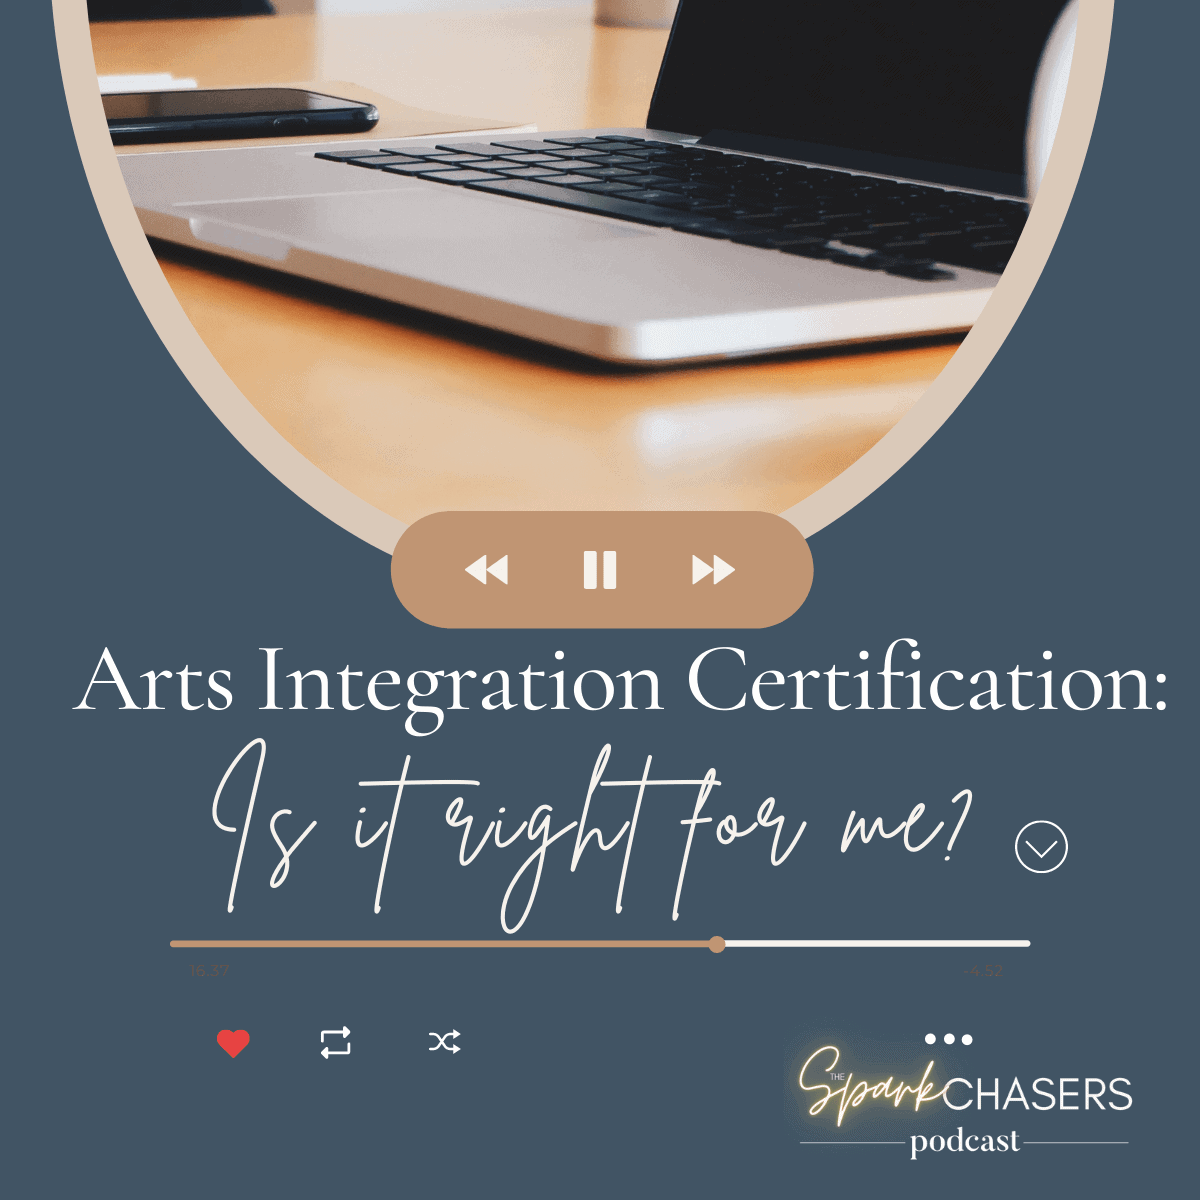 is arts integration certification right for me?